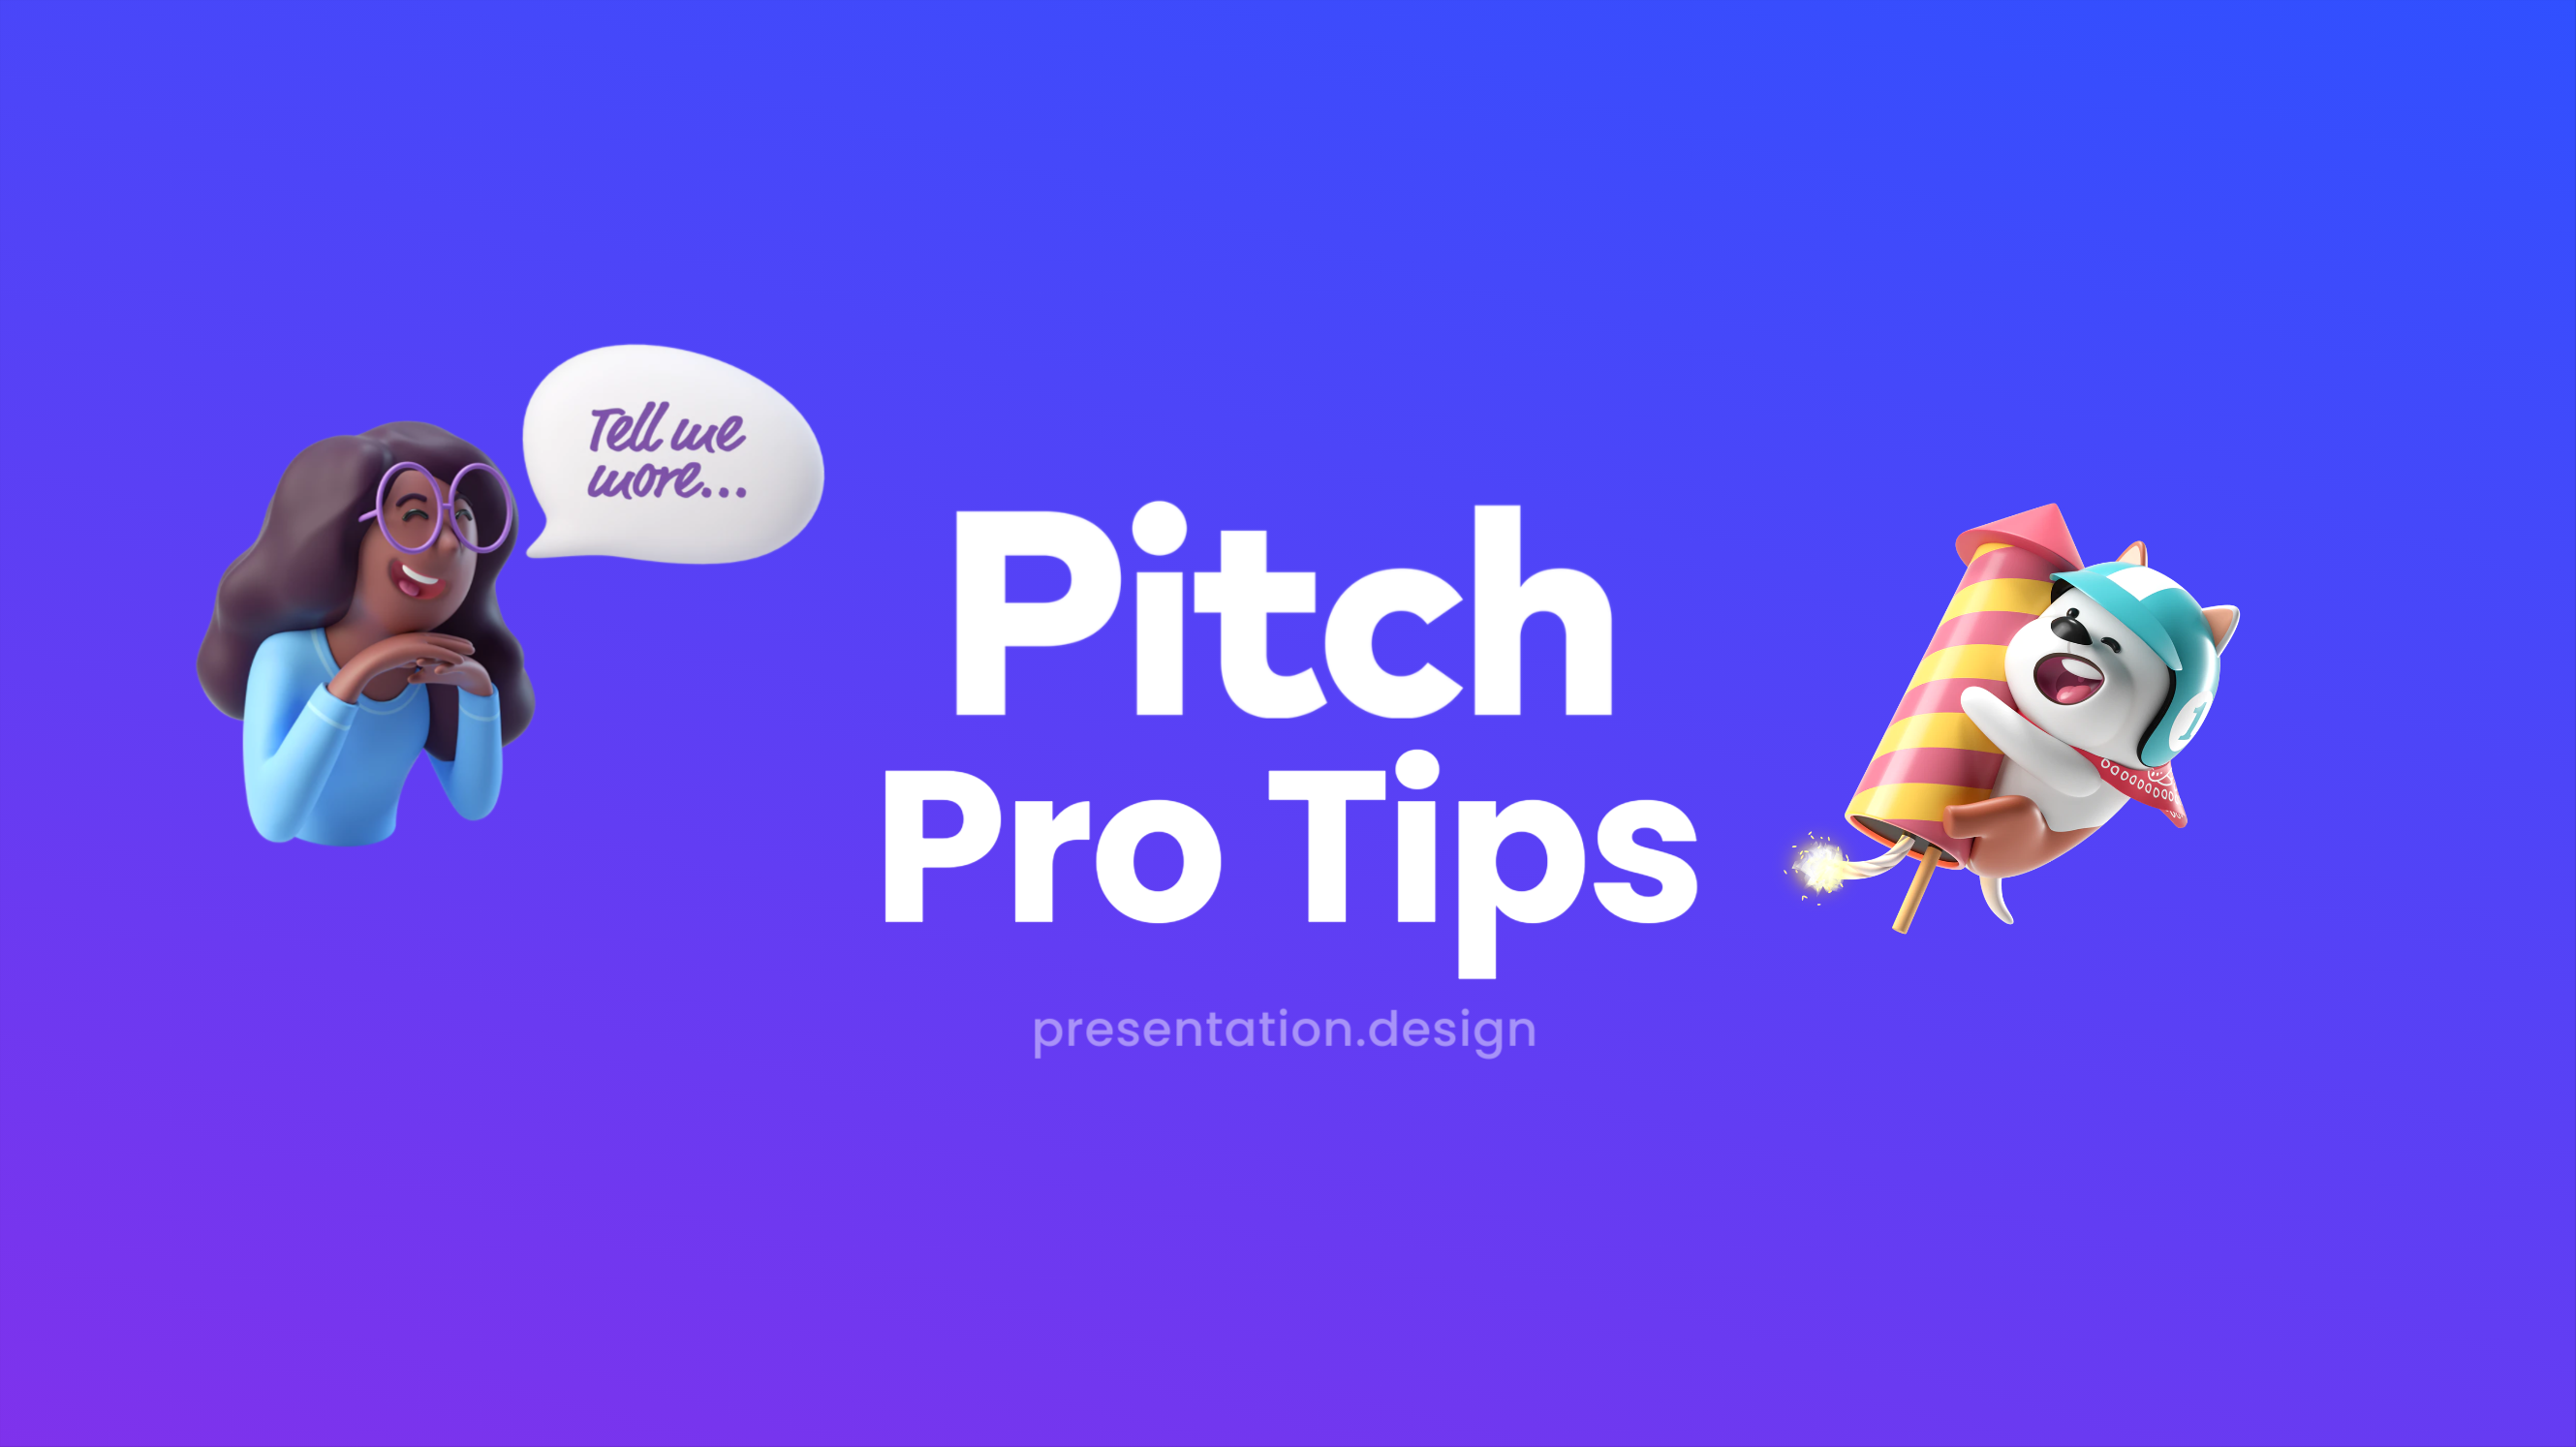 Pitch Pro Tips for Quick, Quality Presentations